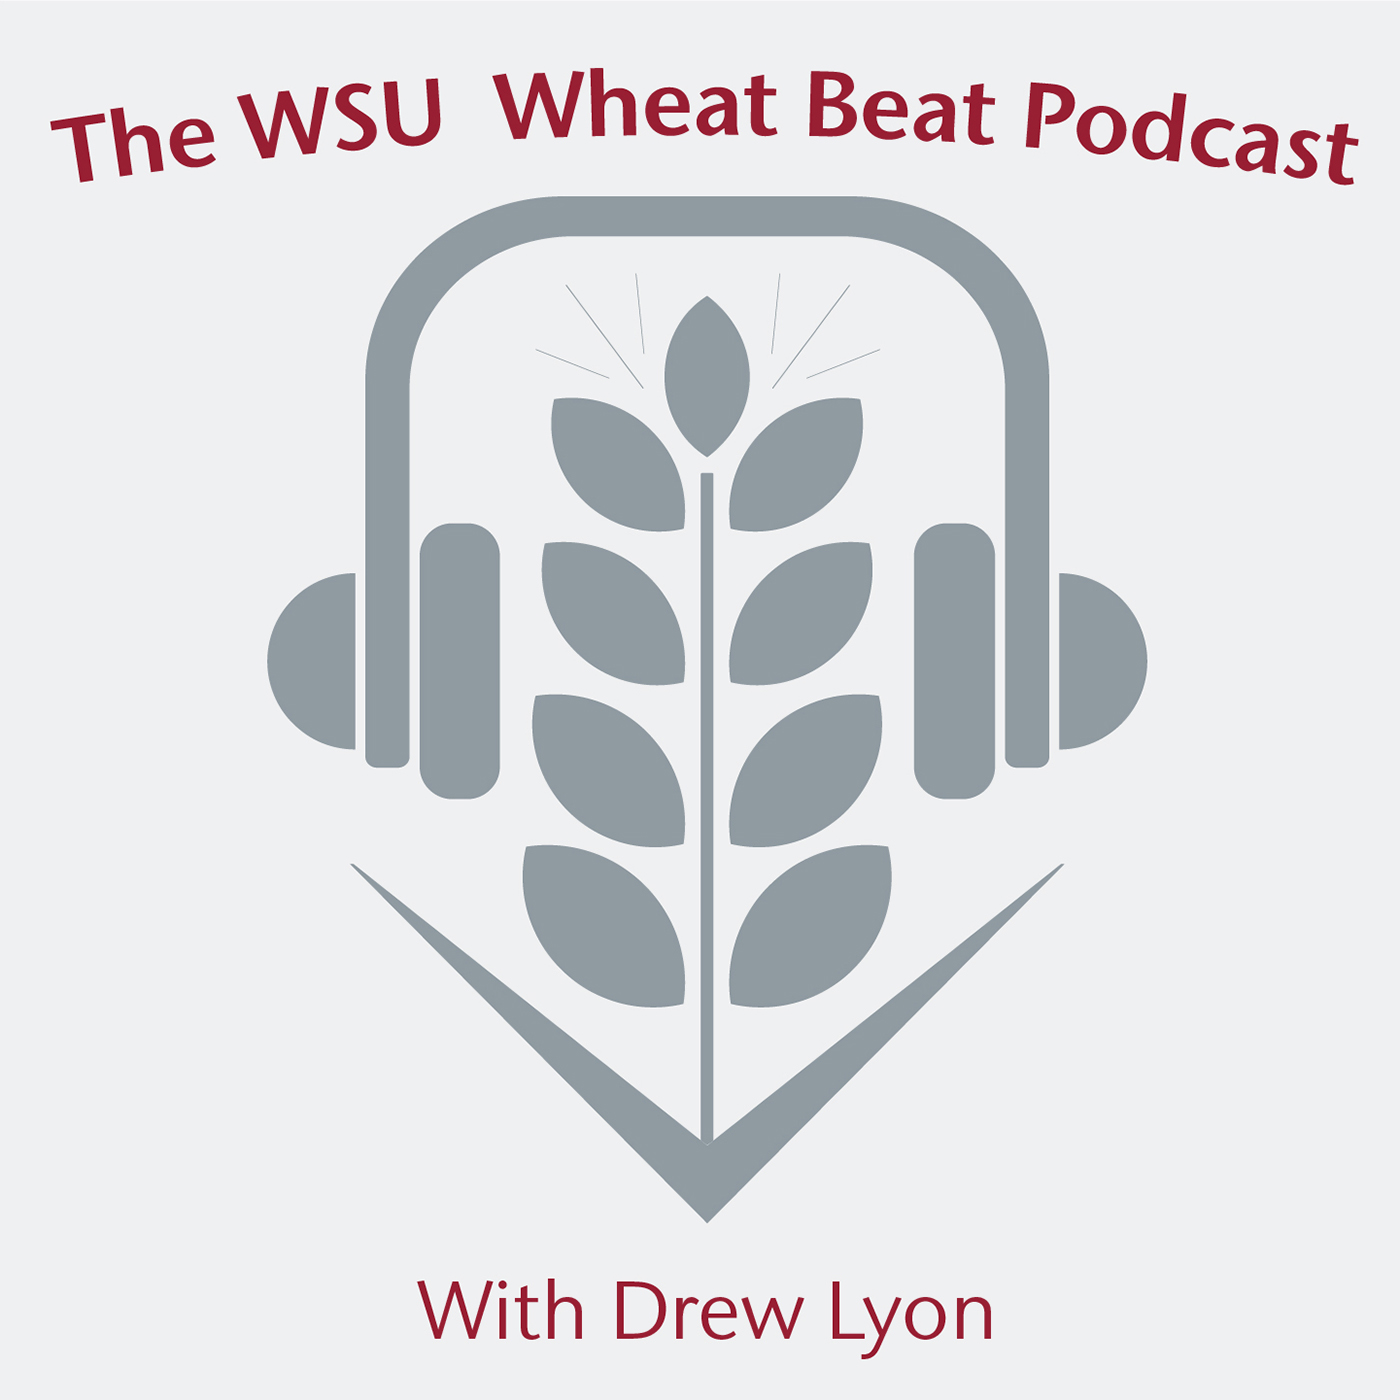 WSU Wheat Beat Podcast logo.